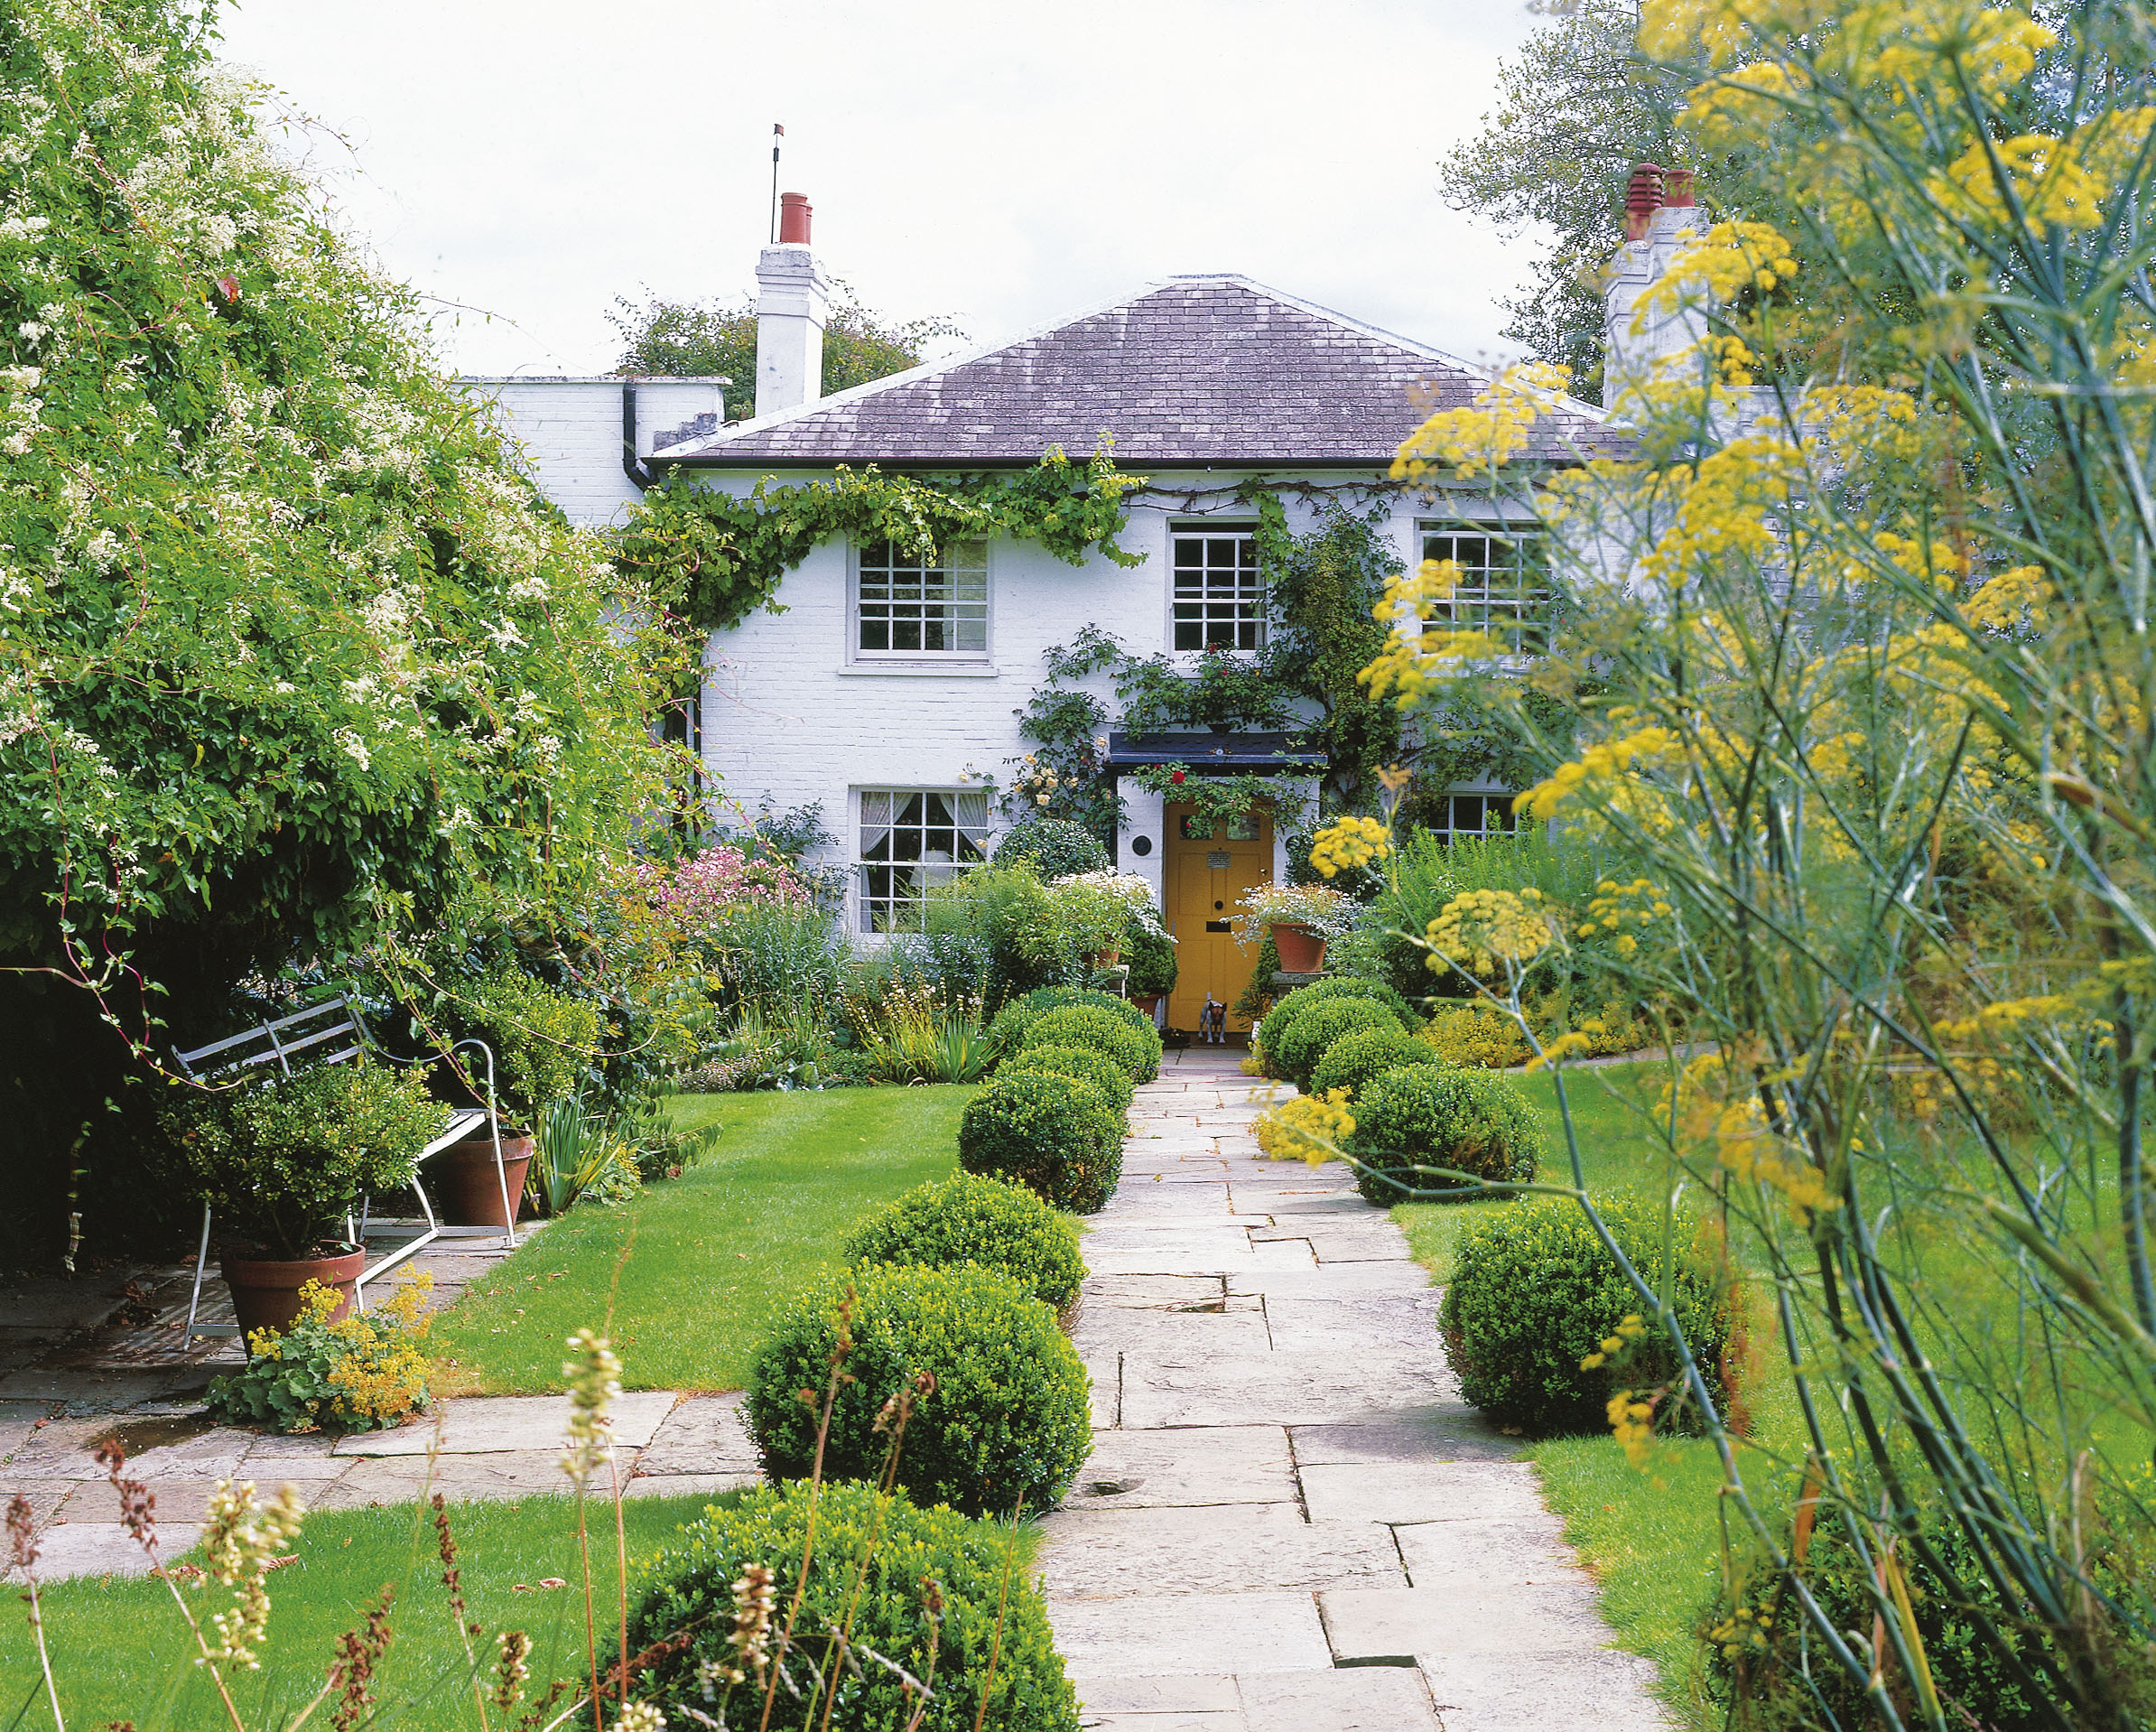 roald dahl 39 s garden to open for charity amateur gardening